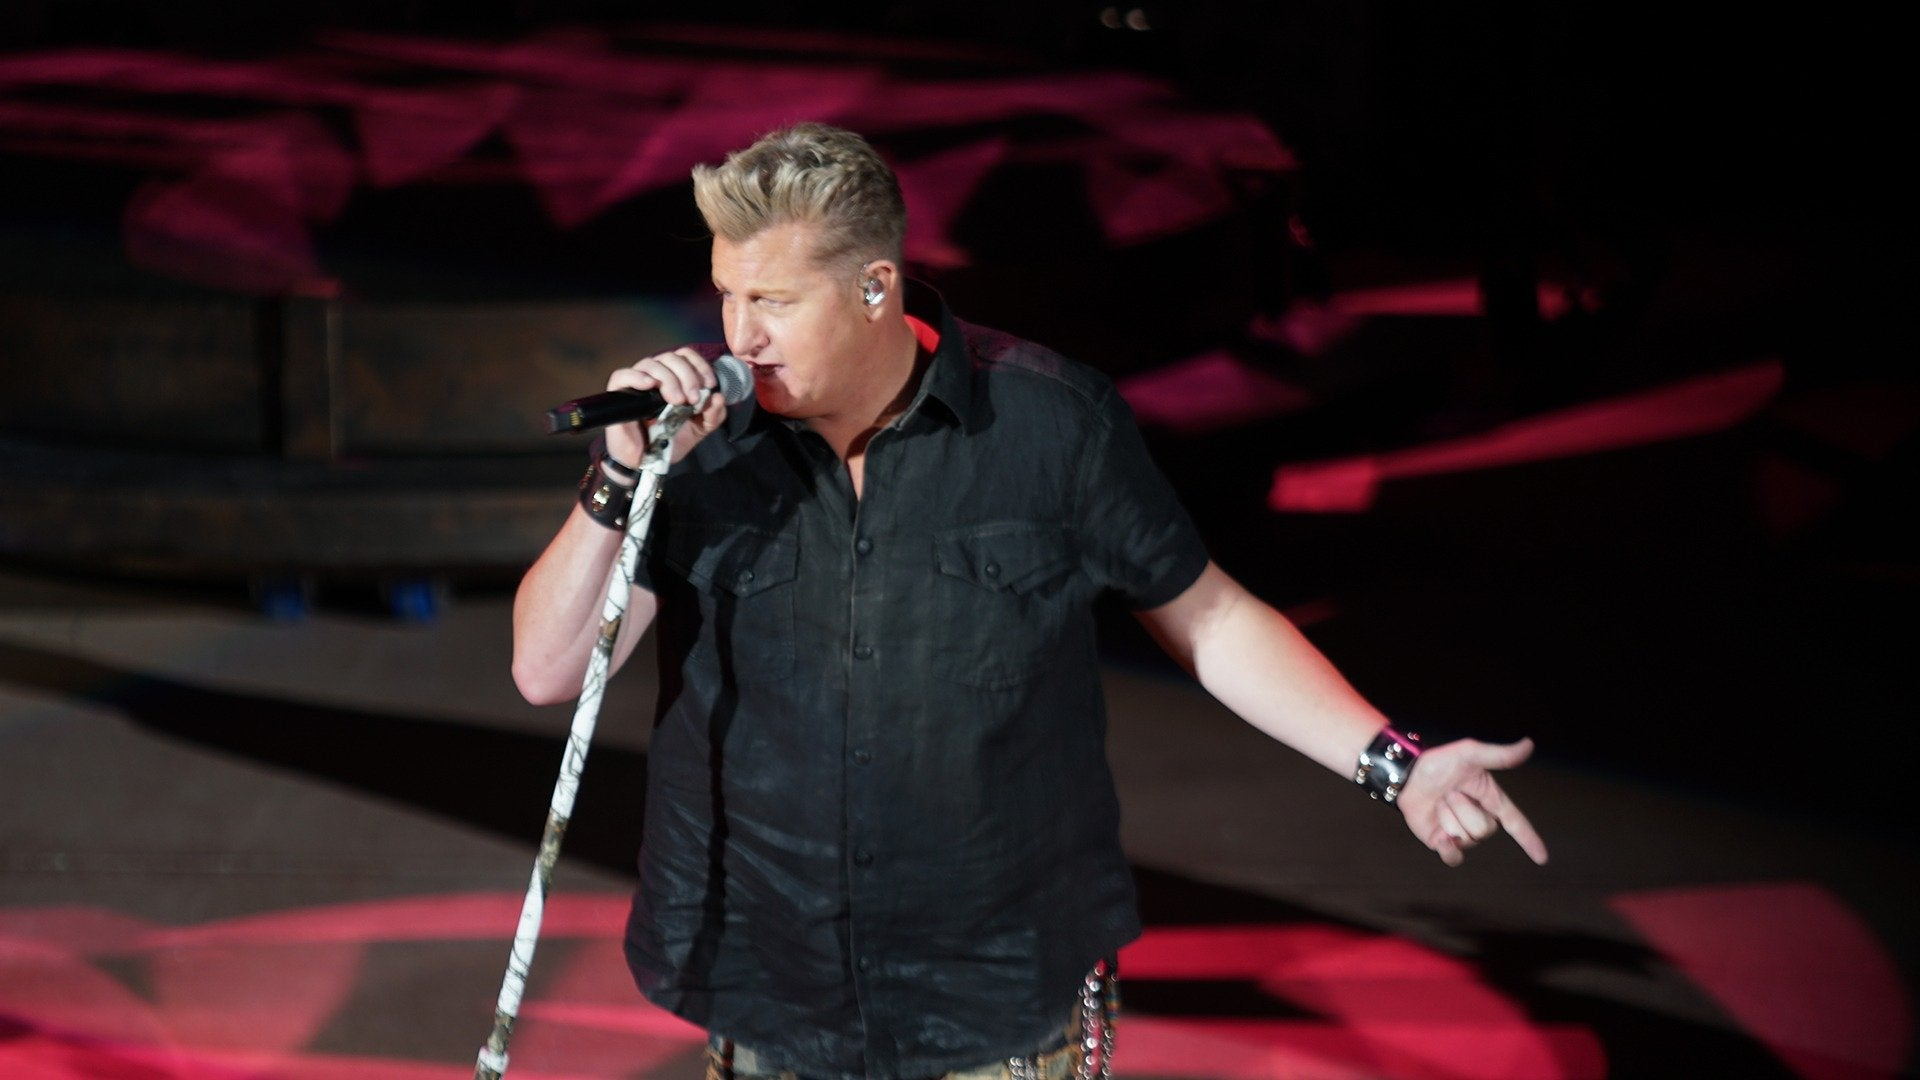 Rascal Flatts: Back to Us Tour - Live From Red Rocks